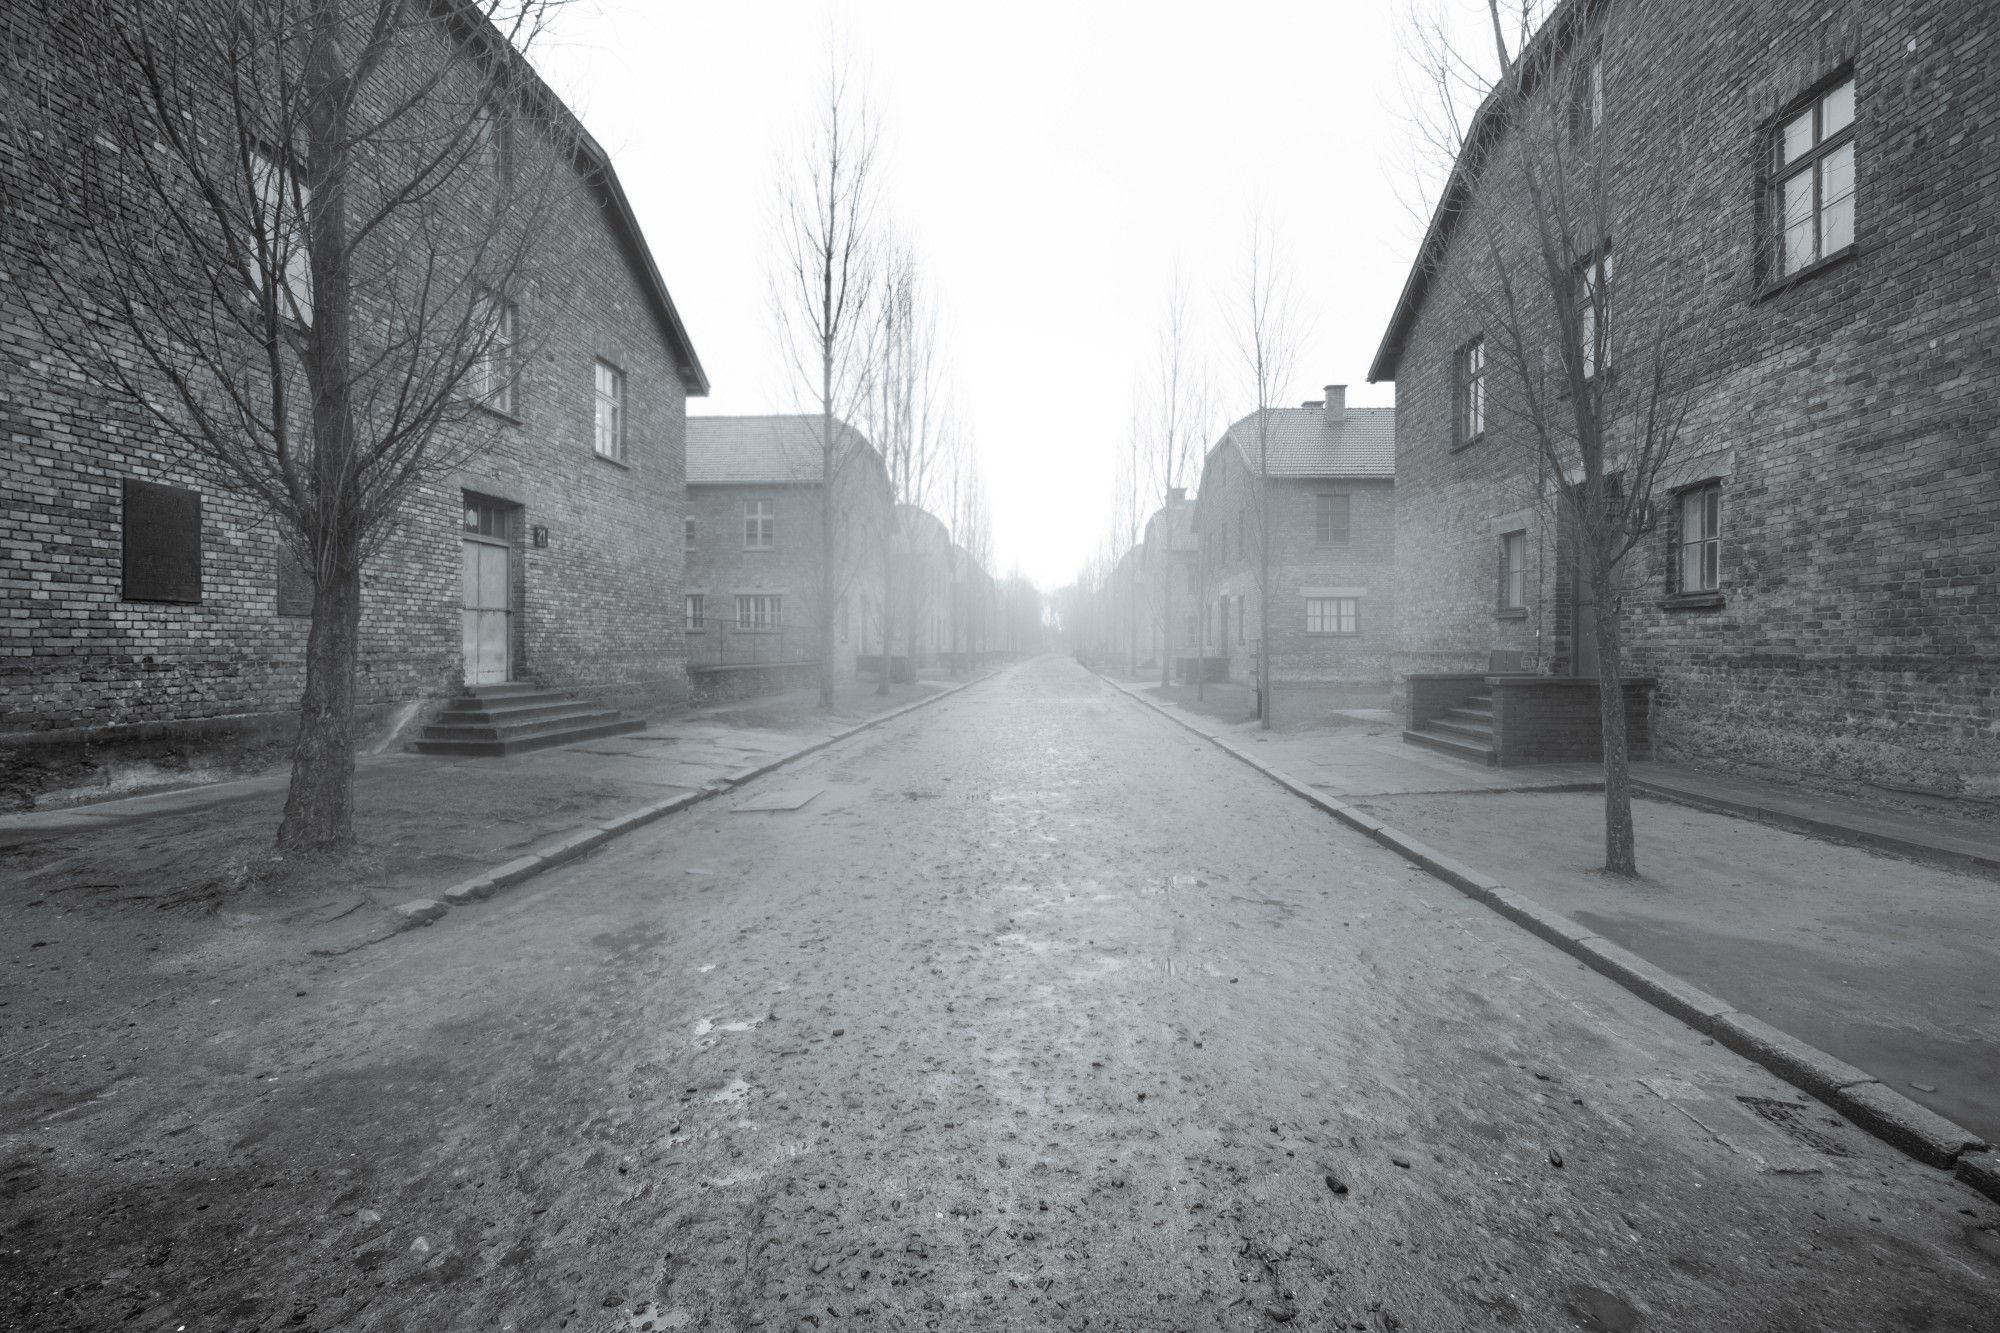 Living quarters and blocks at Auschwitz I.